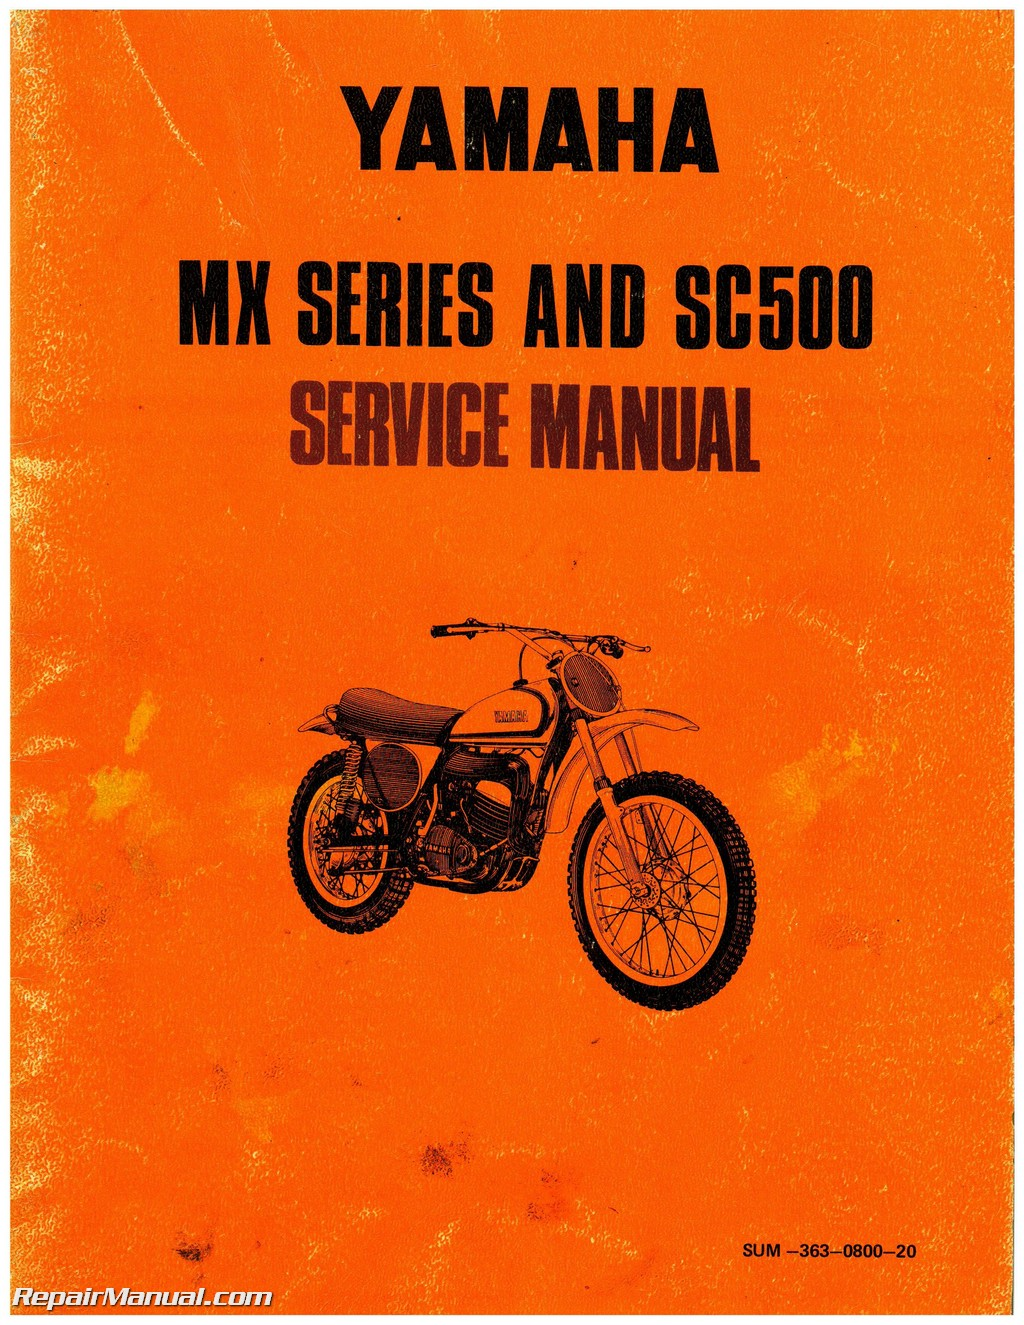 1973 yamaha ltmx atmx mx250 mx360 sc500 motorcycle manual rh repairmanual com yamaha motorcycle manual pdf motorcycle manual yamaha road star warrior